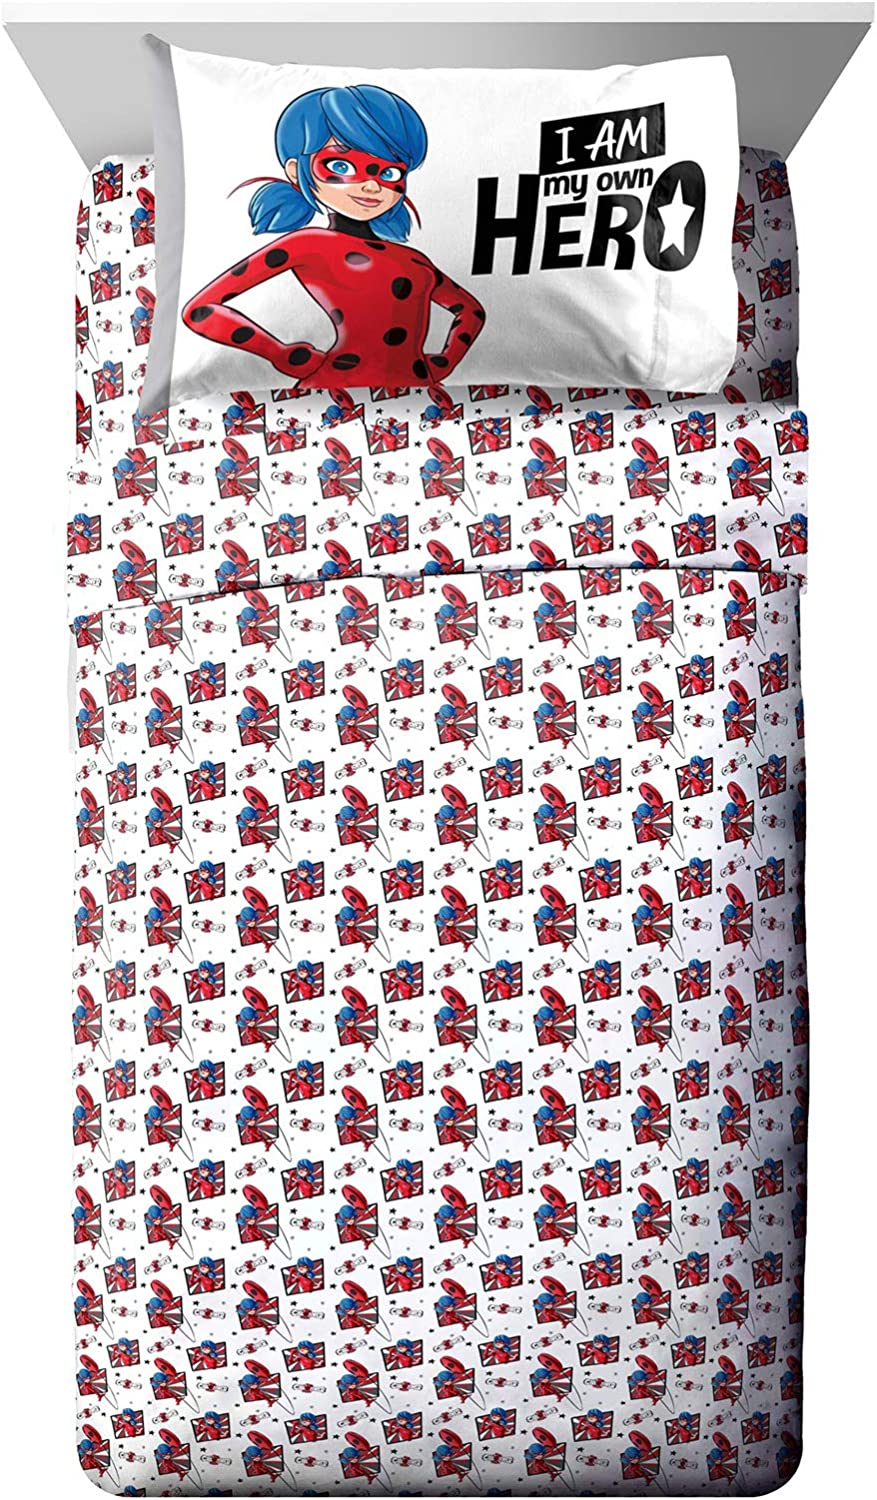 4 Piece Set Super Soft and Cozy Kid/'s Bedding Features Marinette Official Miraculous Ladybug Product Jay Franco Miraculous Ladybug Superhero Full Sheet Set Fade Resistant Microfiber Sheets